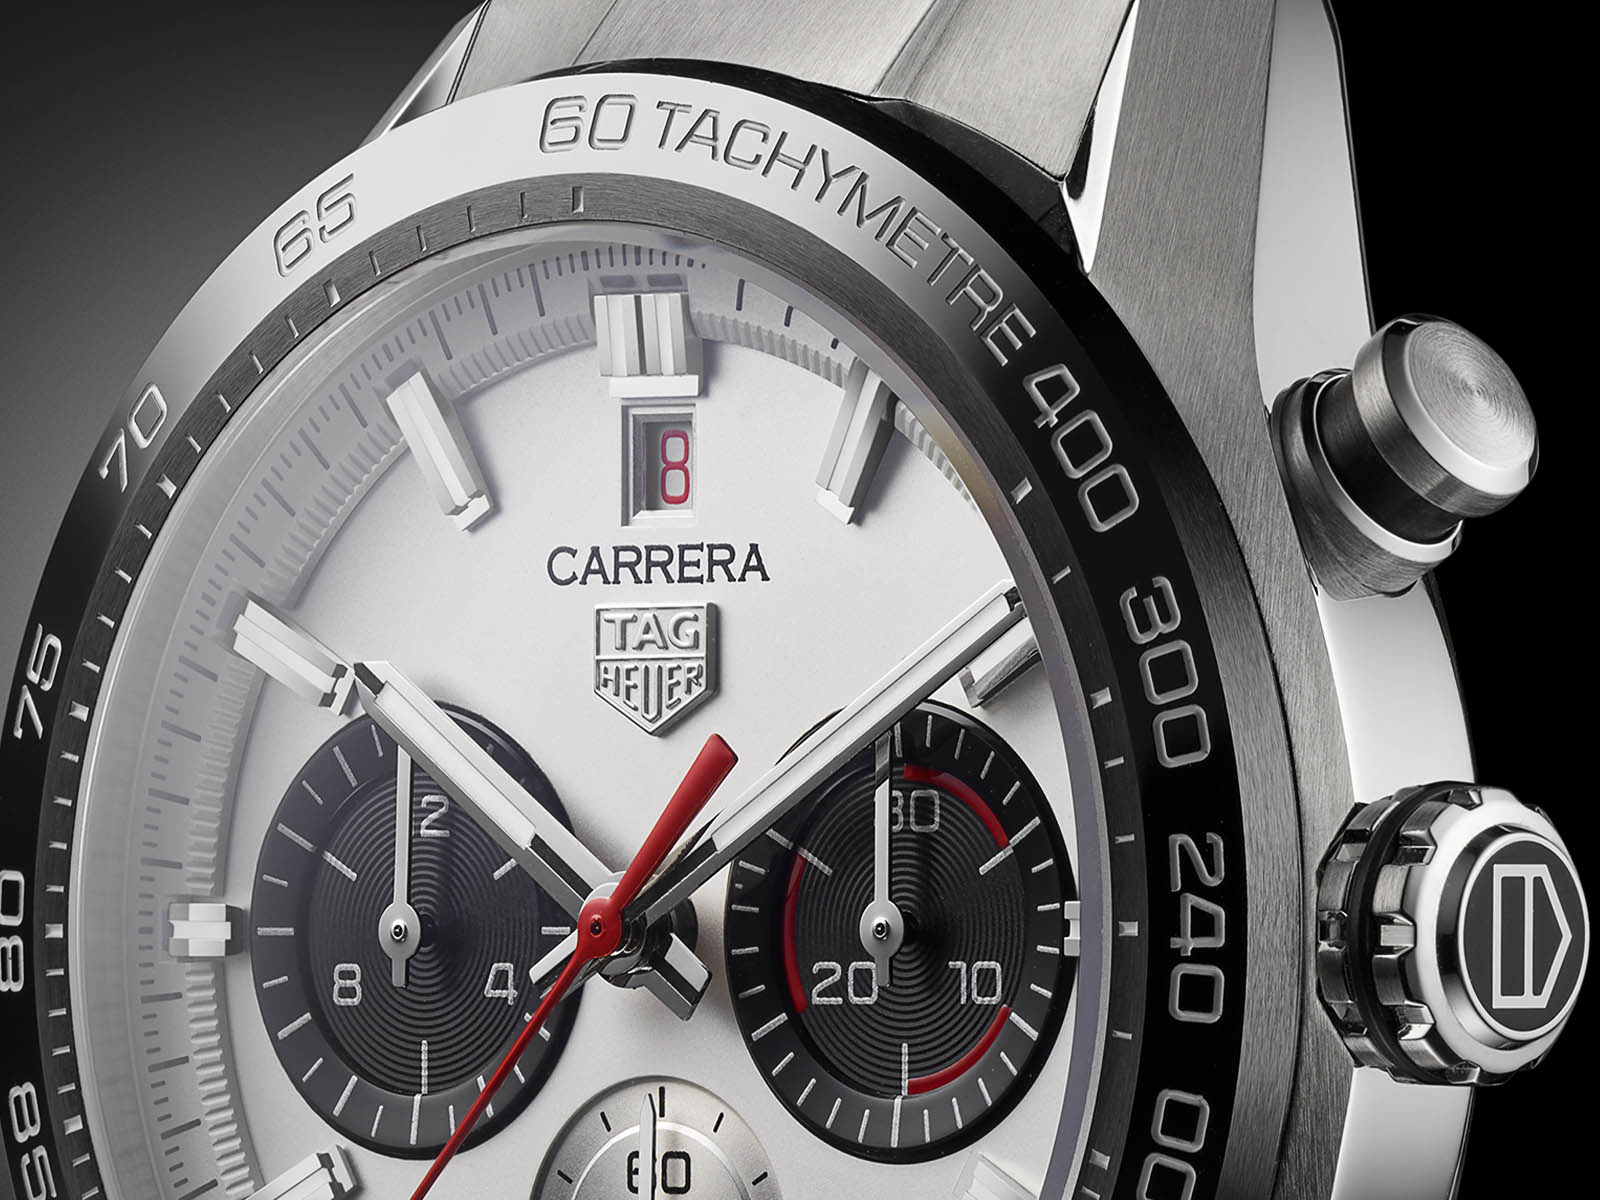 cbn2a1d-ba0643-tag-heuer-carrera-sport-chronograph-160-years-special-edition-3.jpg